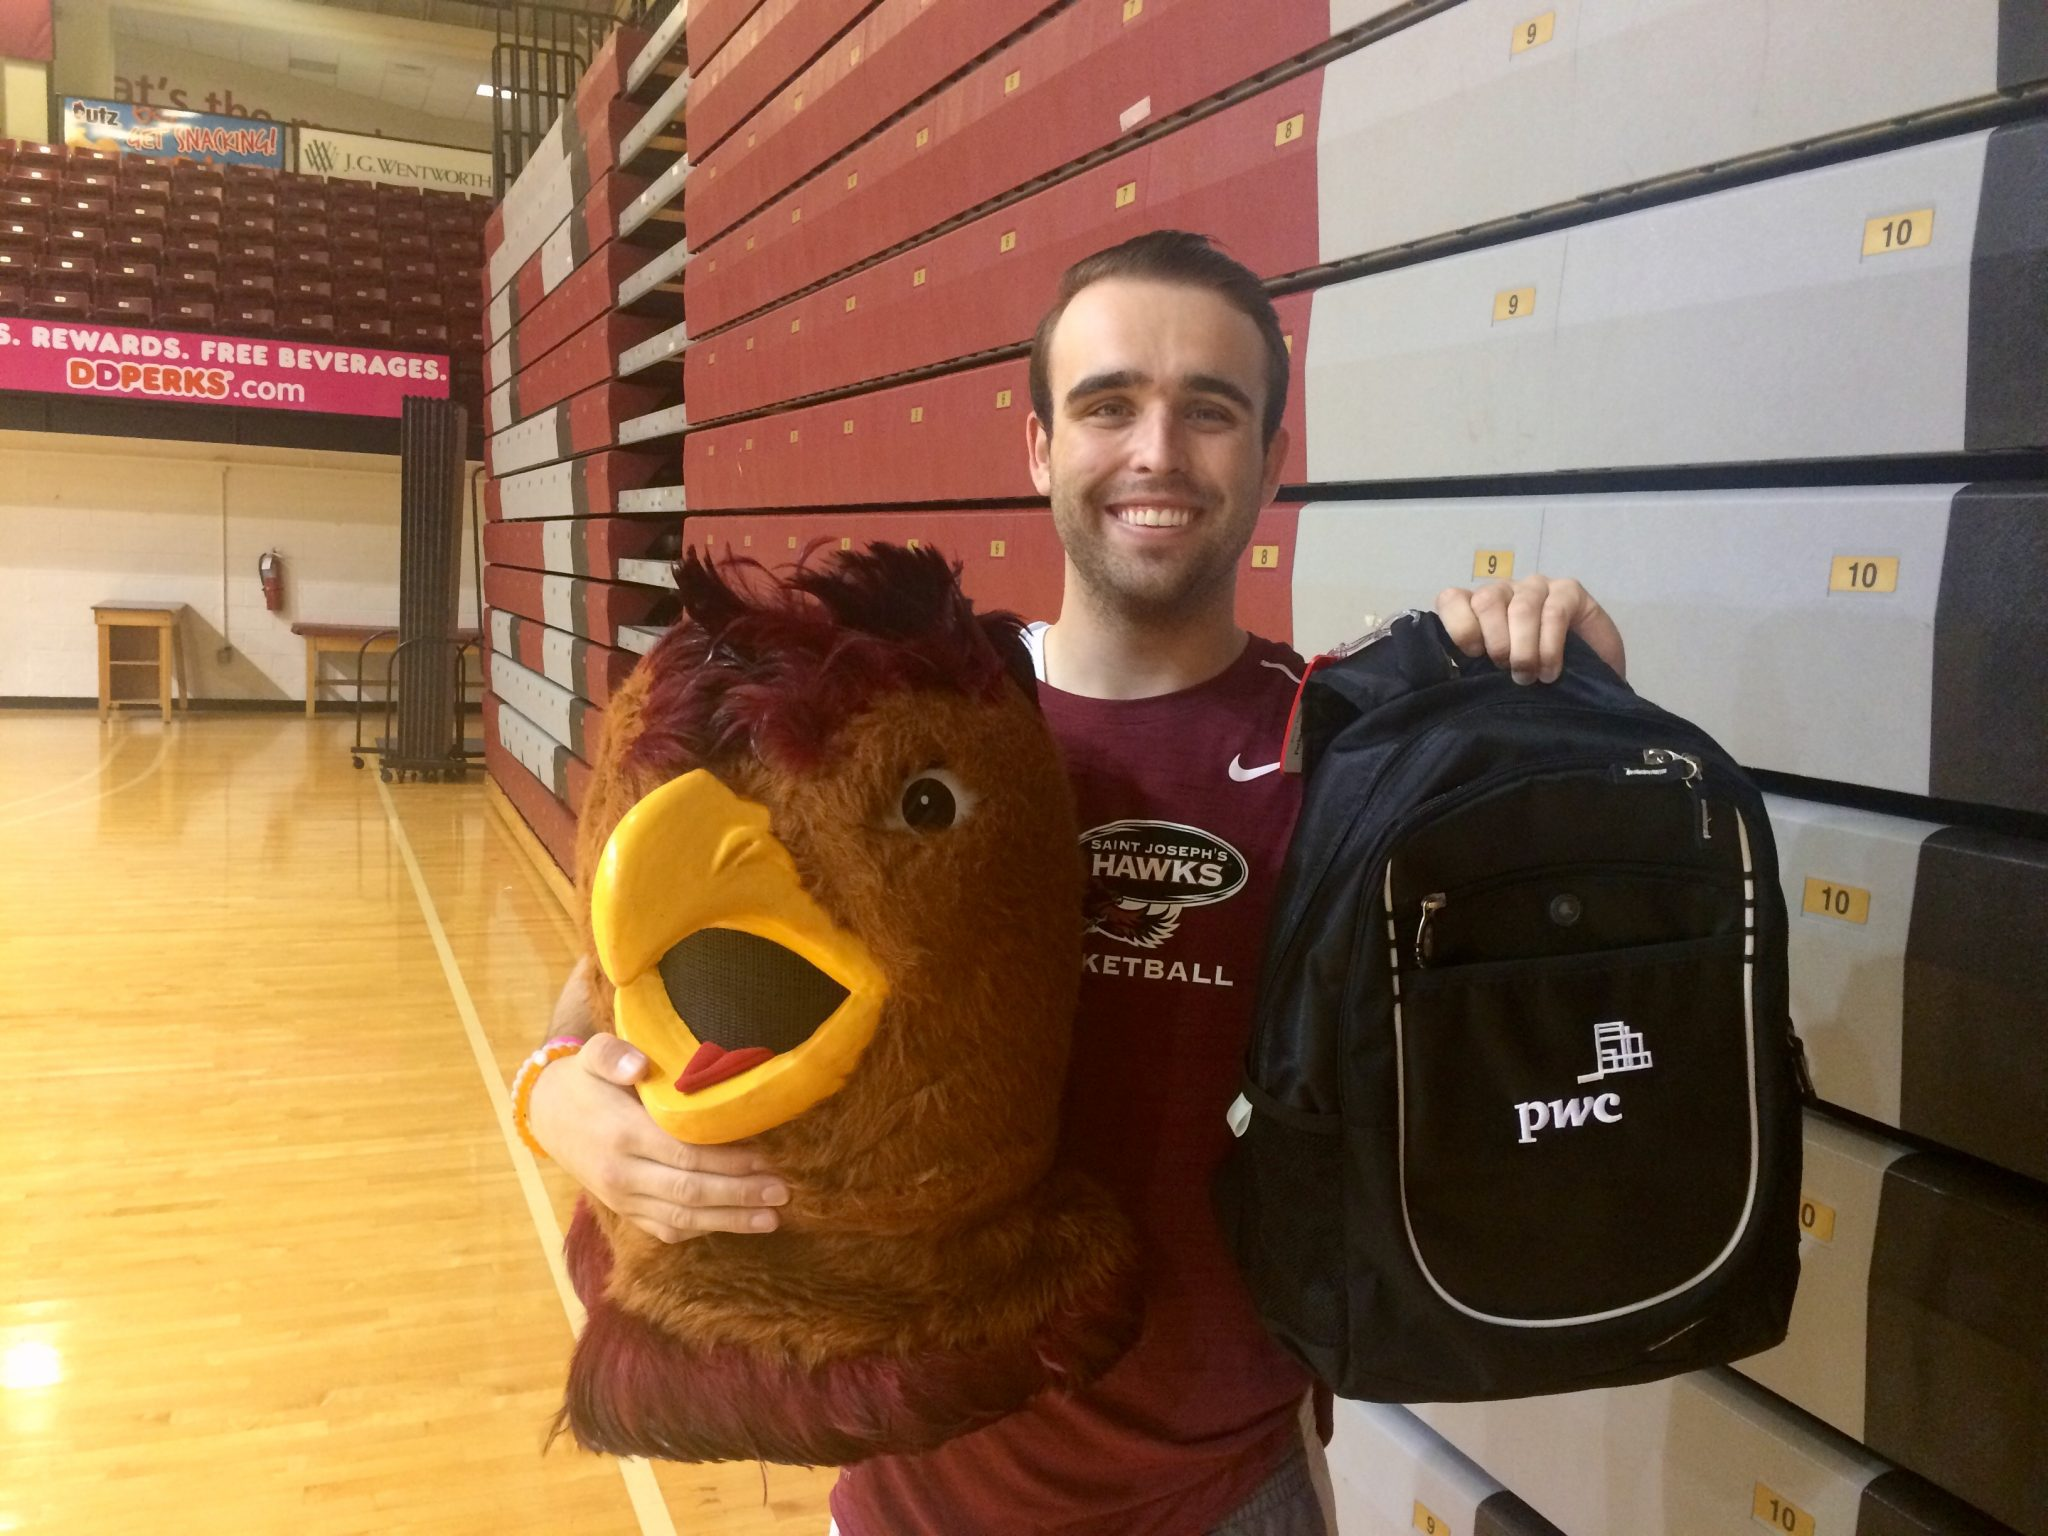 Timmy Parks is smiling in a gym, holding the Hawk mascot head and a PWC backpack.